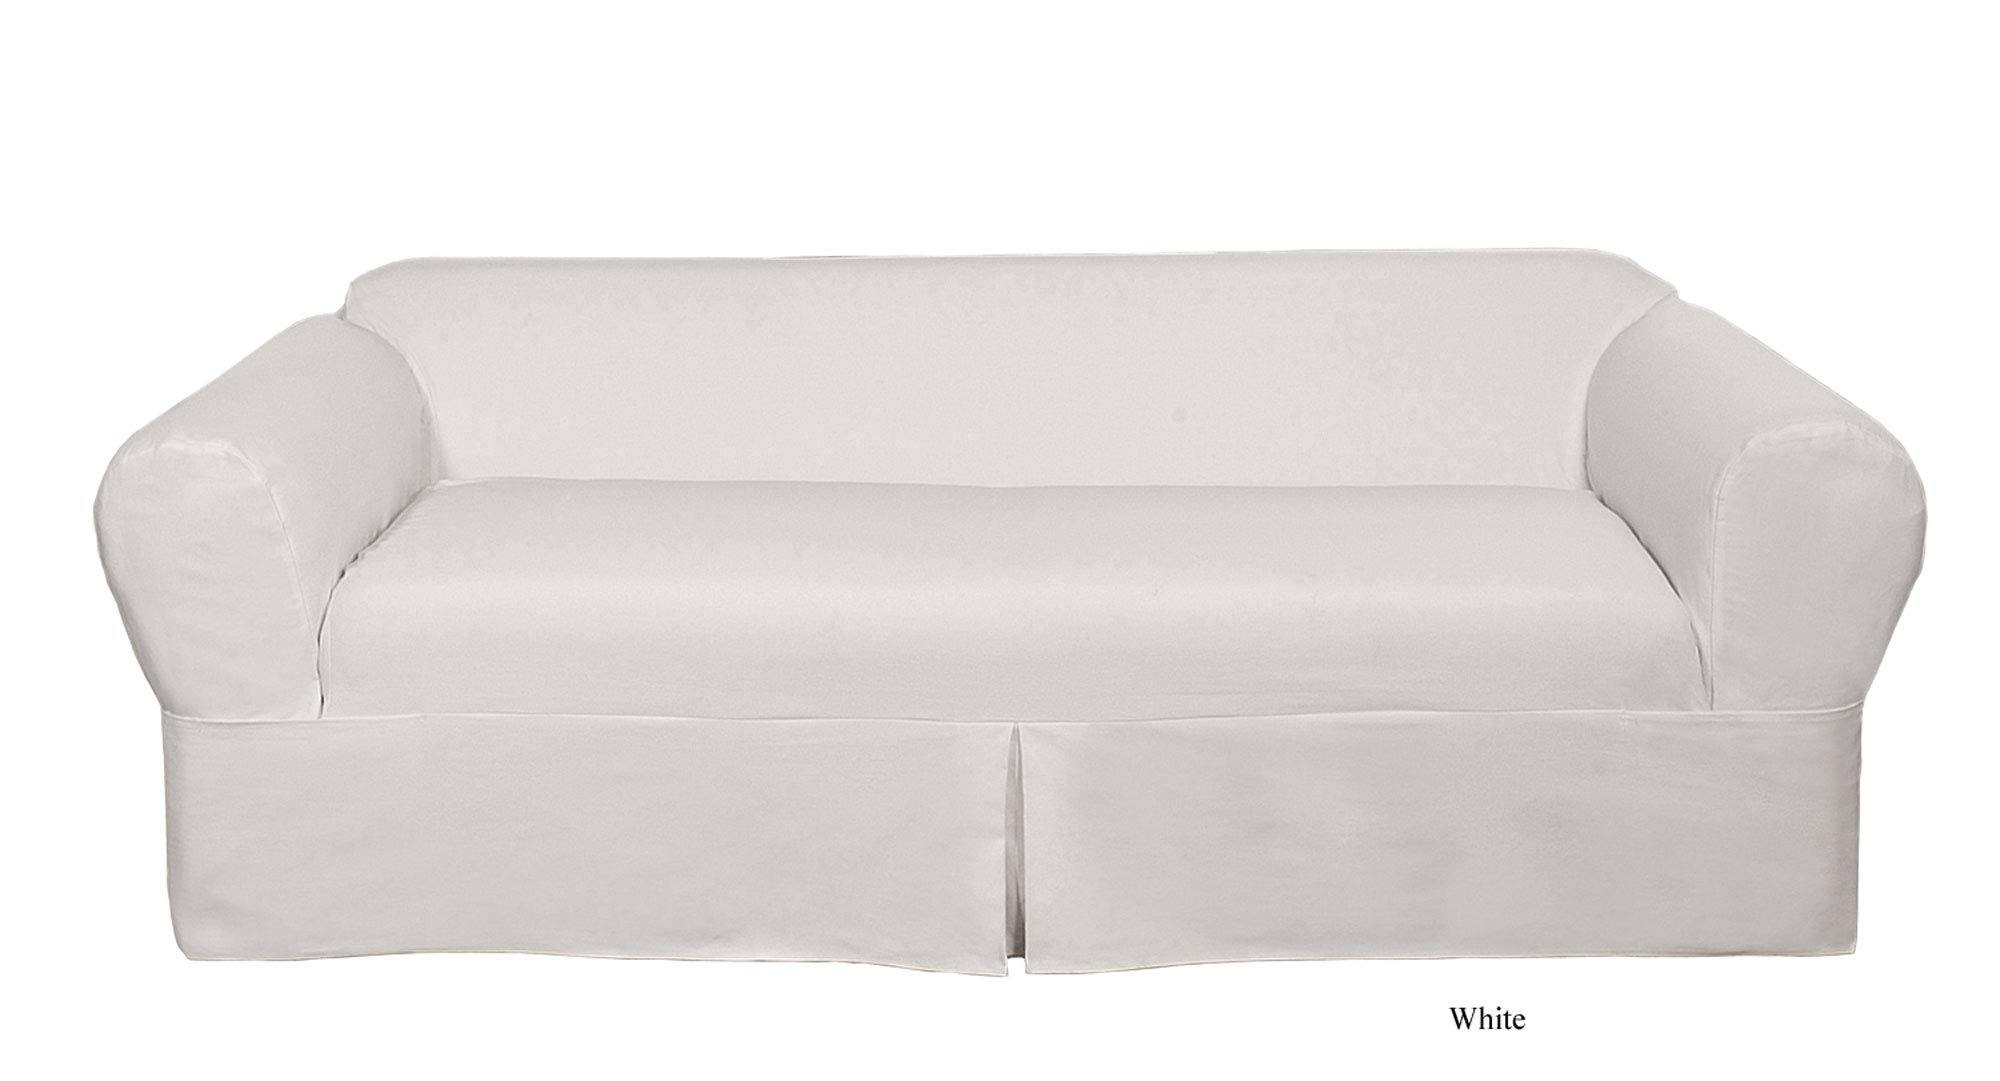 Classic Slipcovers WDEN2PC10WHT Sofa, 2 Piece, Separate Cushion Cover, Pure White